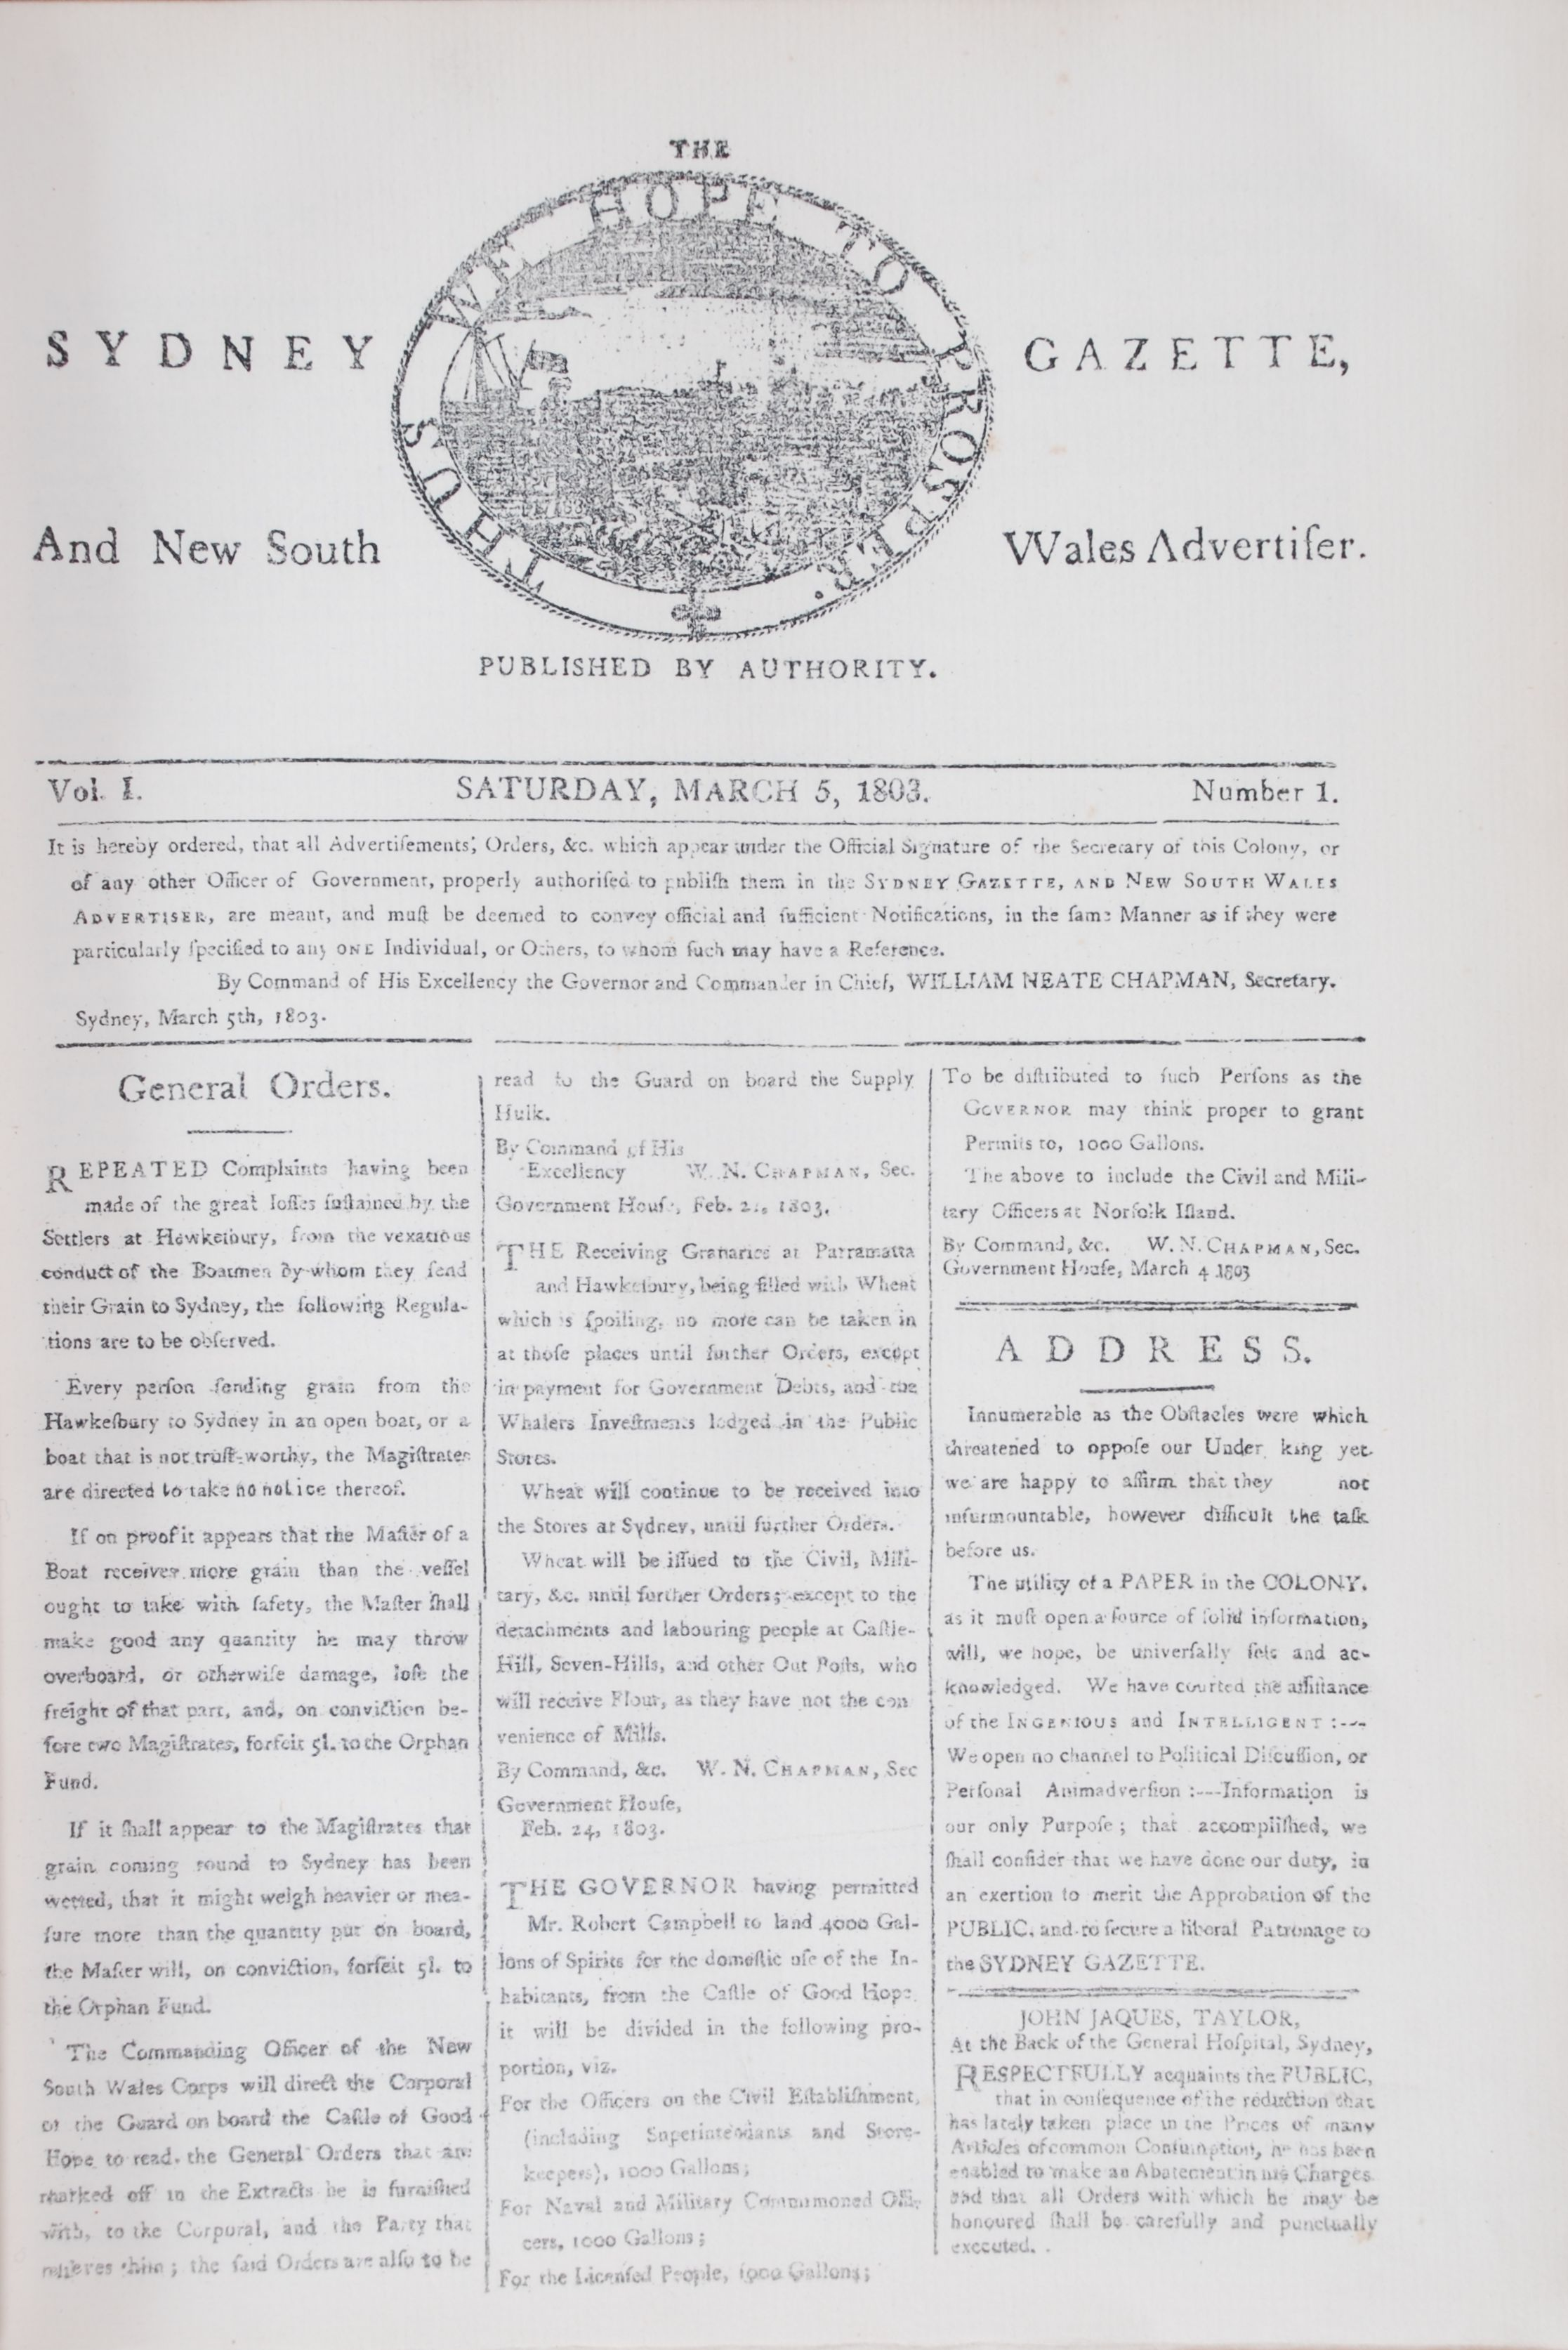 Sydney Gazette and New South Wales Advertiser. Volume 1, 25th March 1803 – 26th February 1804. Sydney: Angus & Robertson, 1899.( Facsimile).